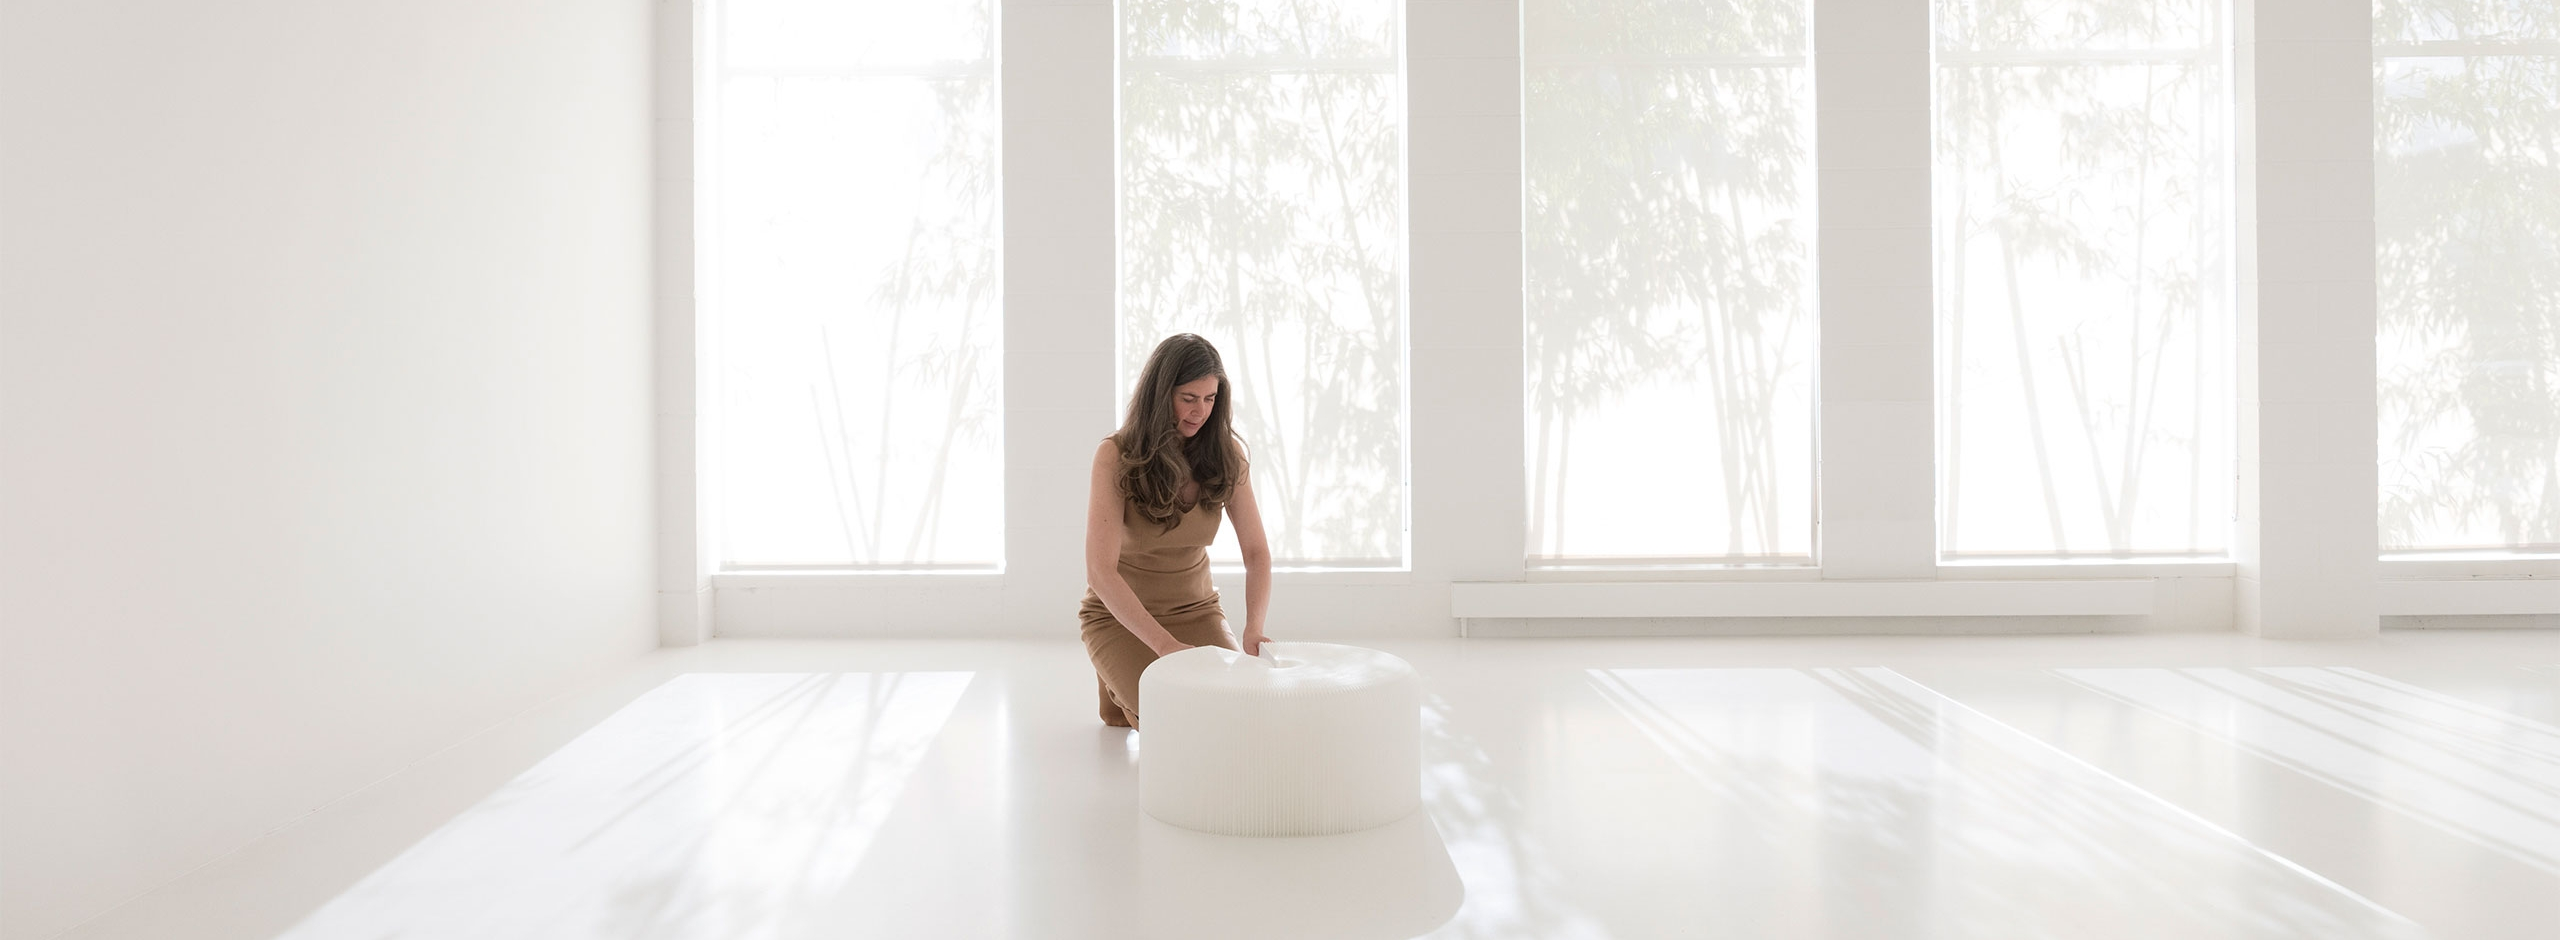 The softseating folding paper stool by molo is available two materials and several colors. This white stool is a paper-like, water resistant textile. Original design from the collection of paper furniture designed by Stephanie Forsythe and Todd MacAllen.